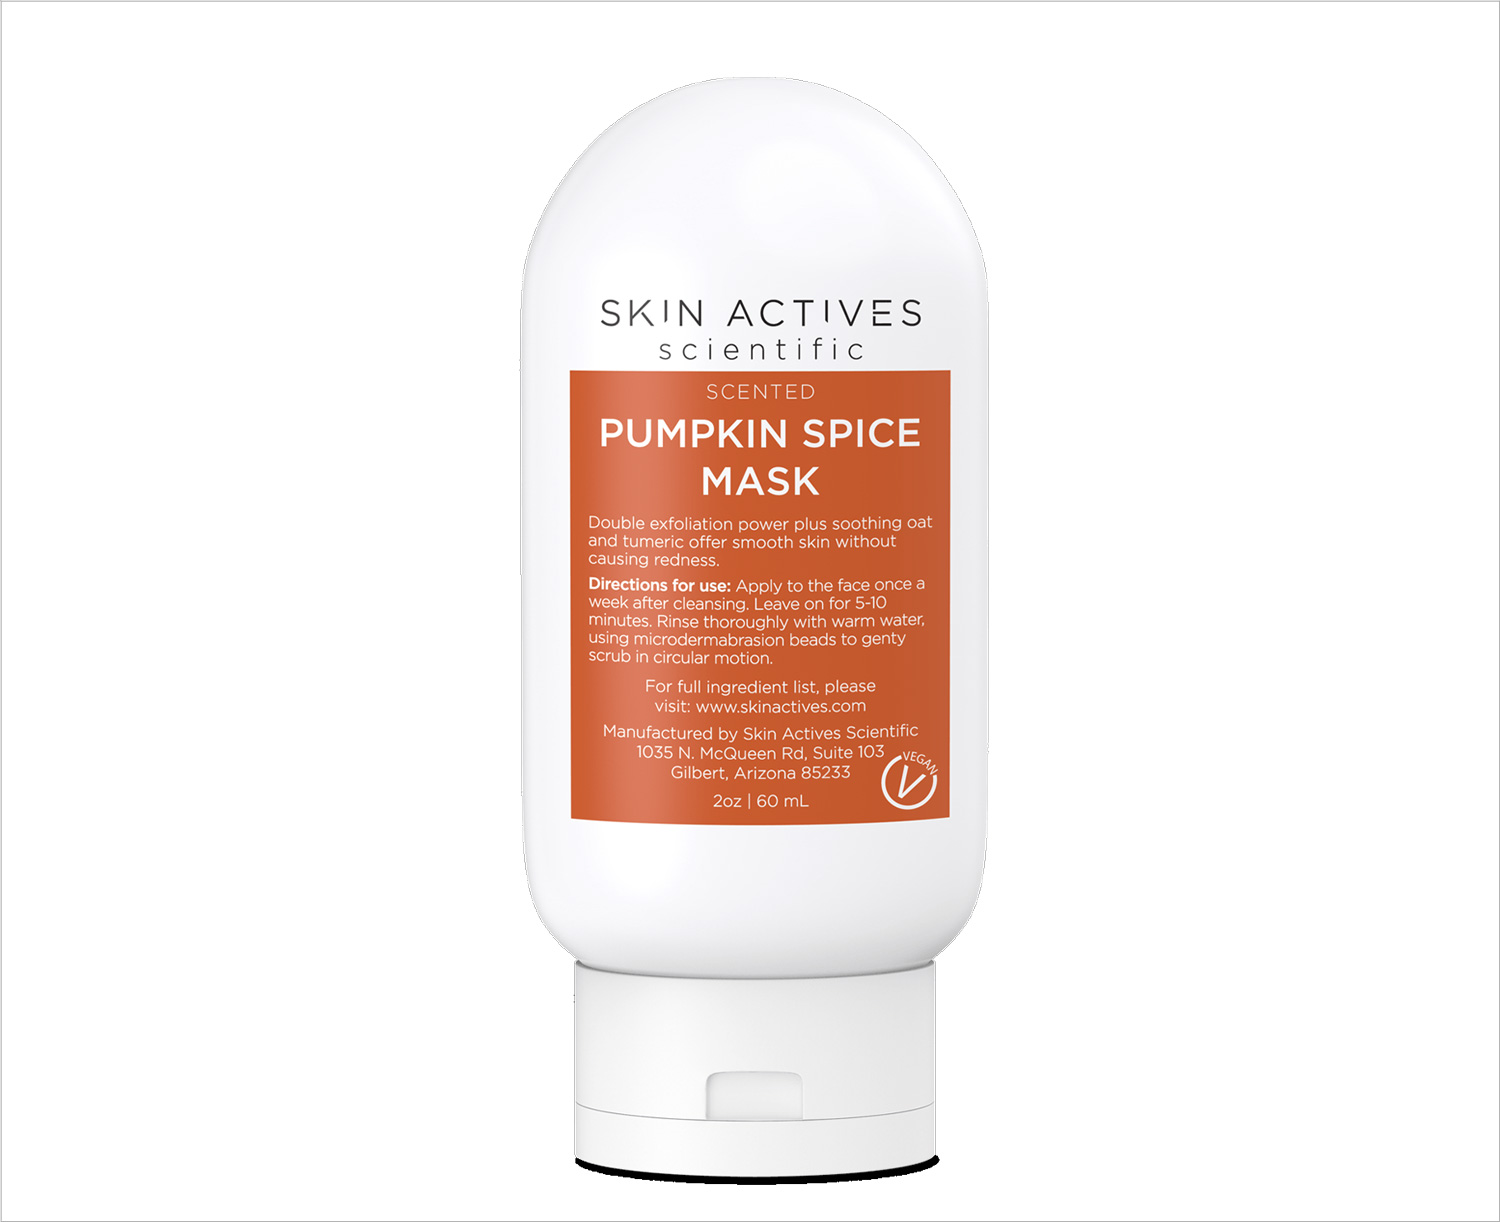 Skin Actives pumpkin spice mask exfoliating beauty product fall wedding ideas